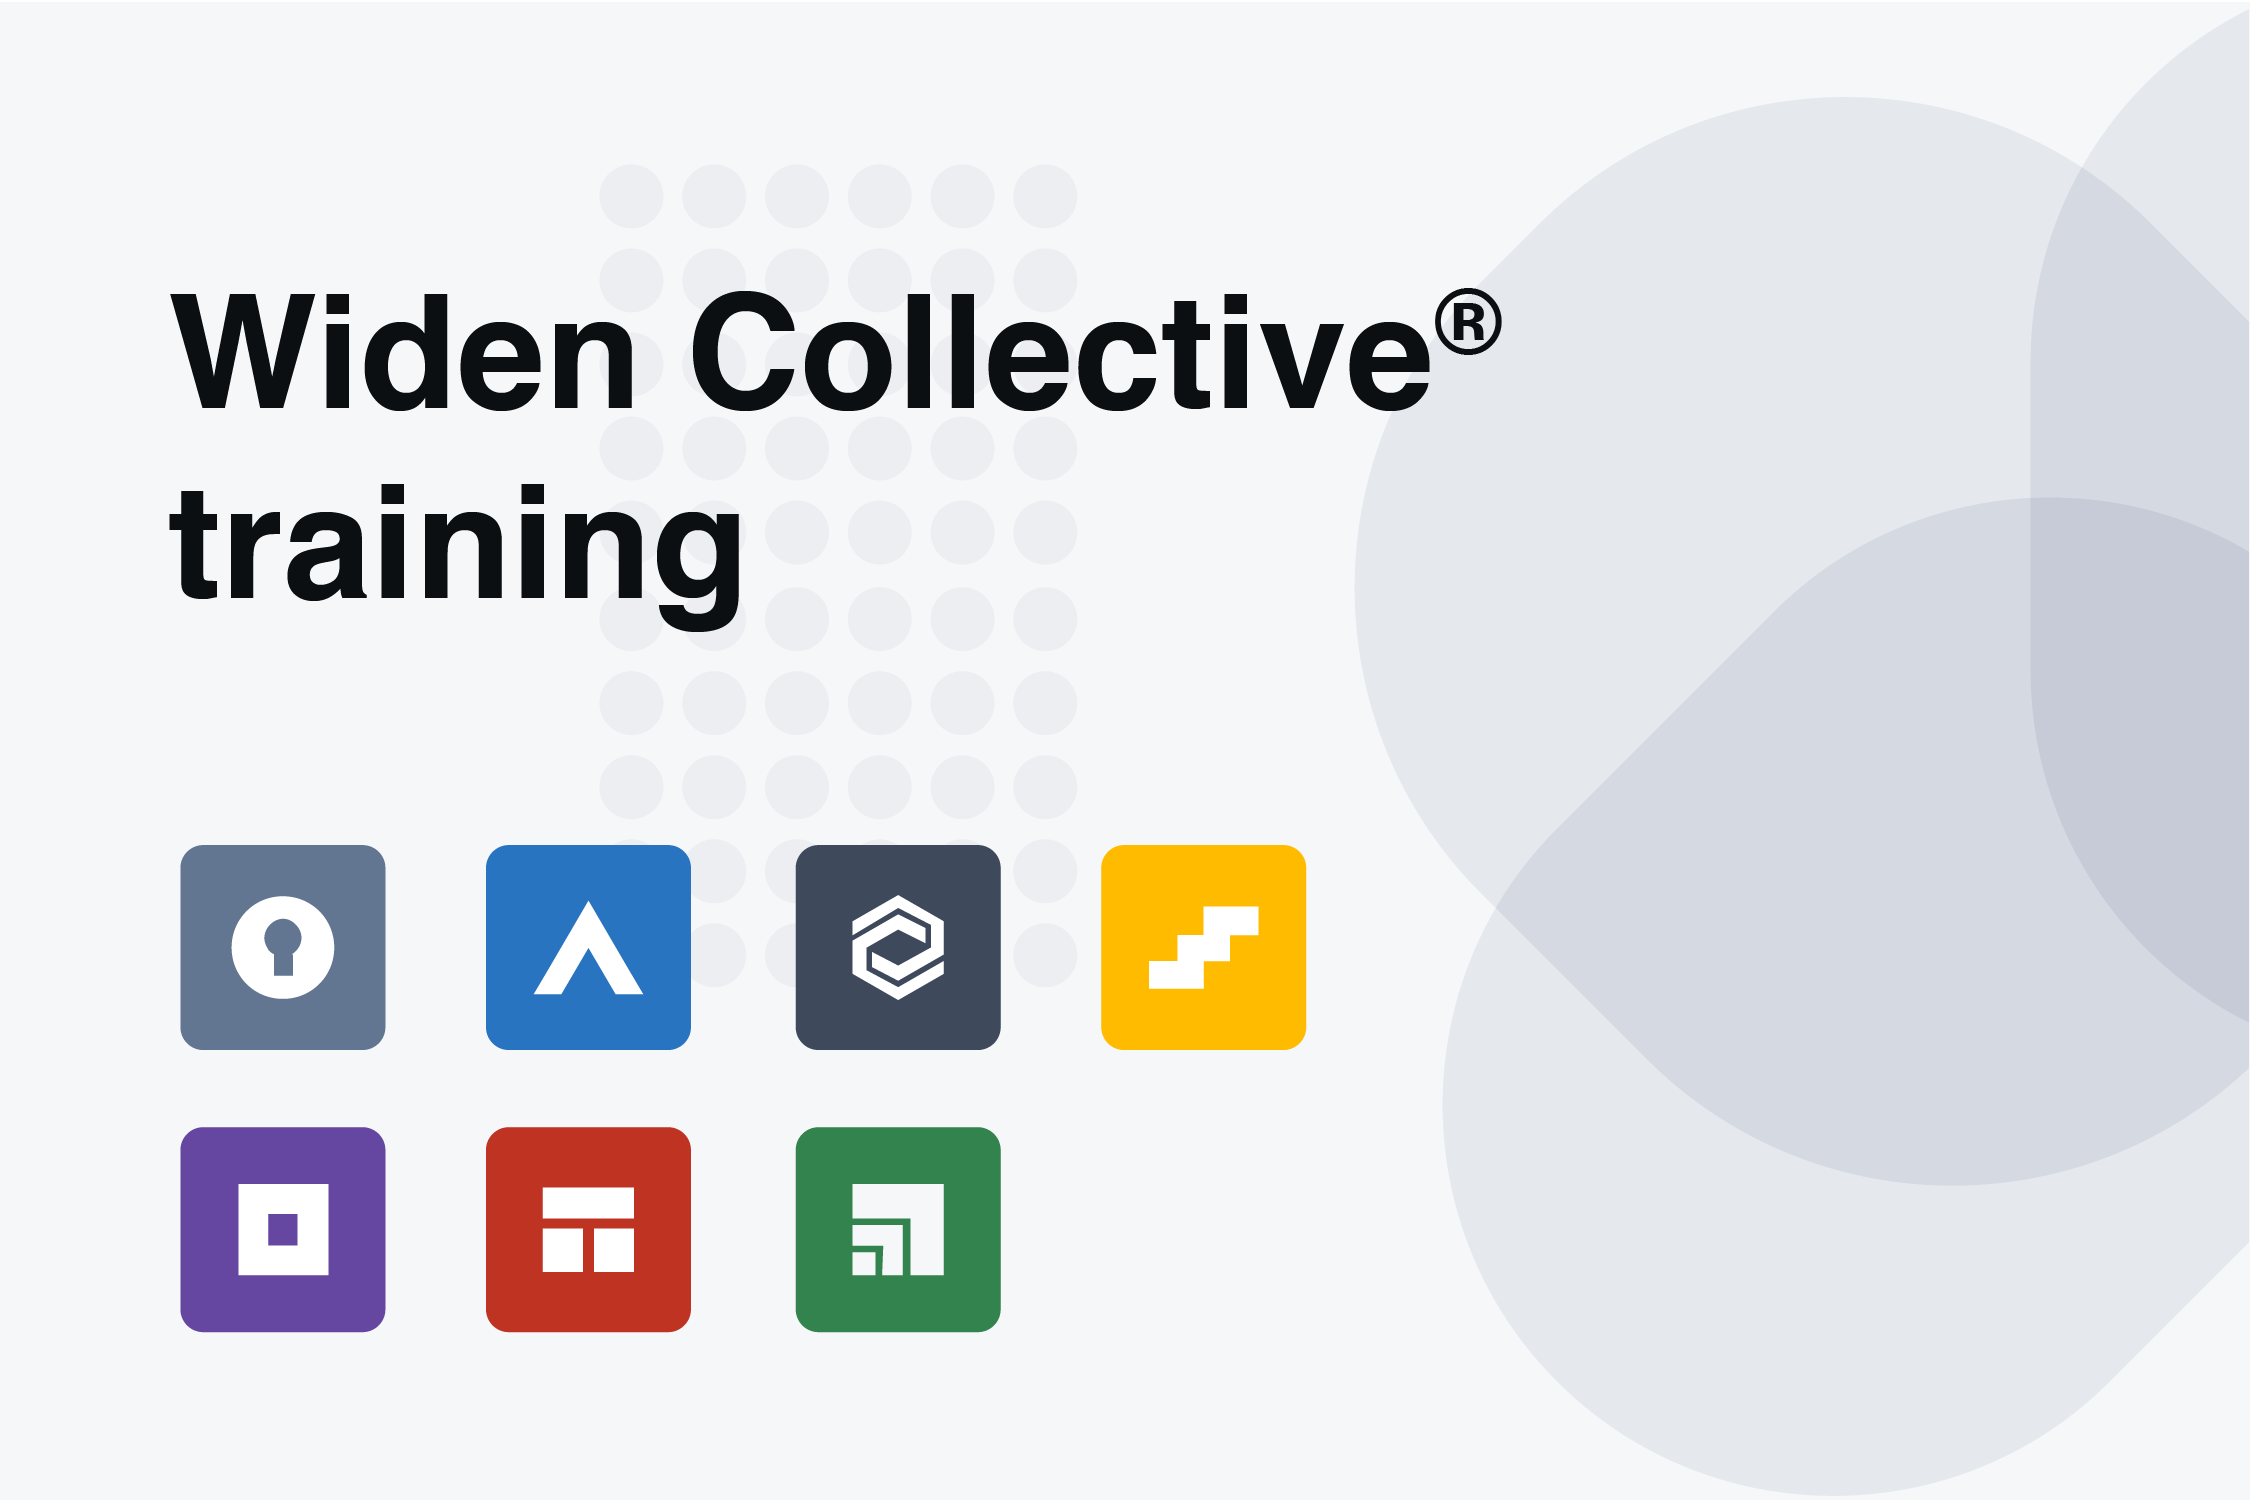 Learn more with a range of training options for the Widen Collective.